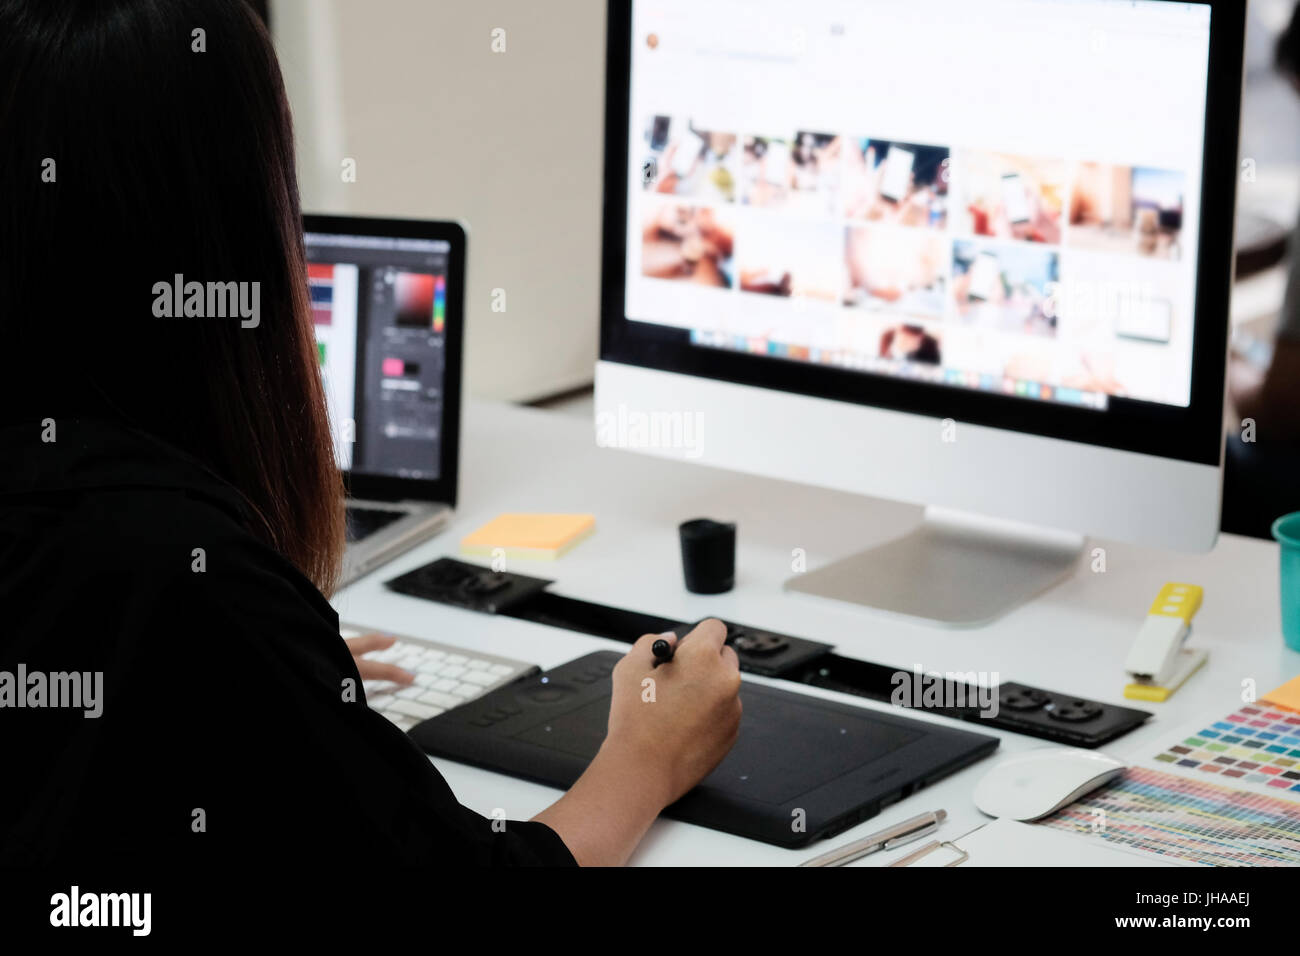 Graphic designer woman working on creative office with create graphic on computer. - Stock Image